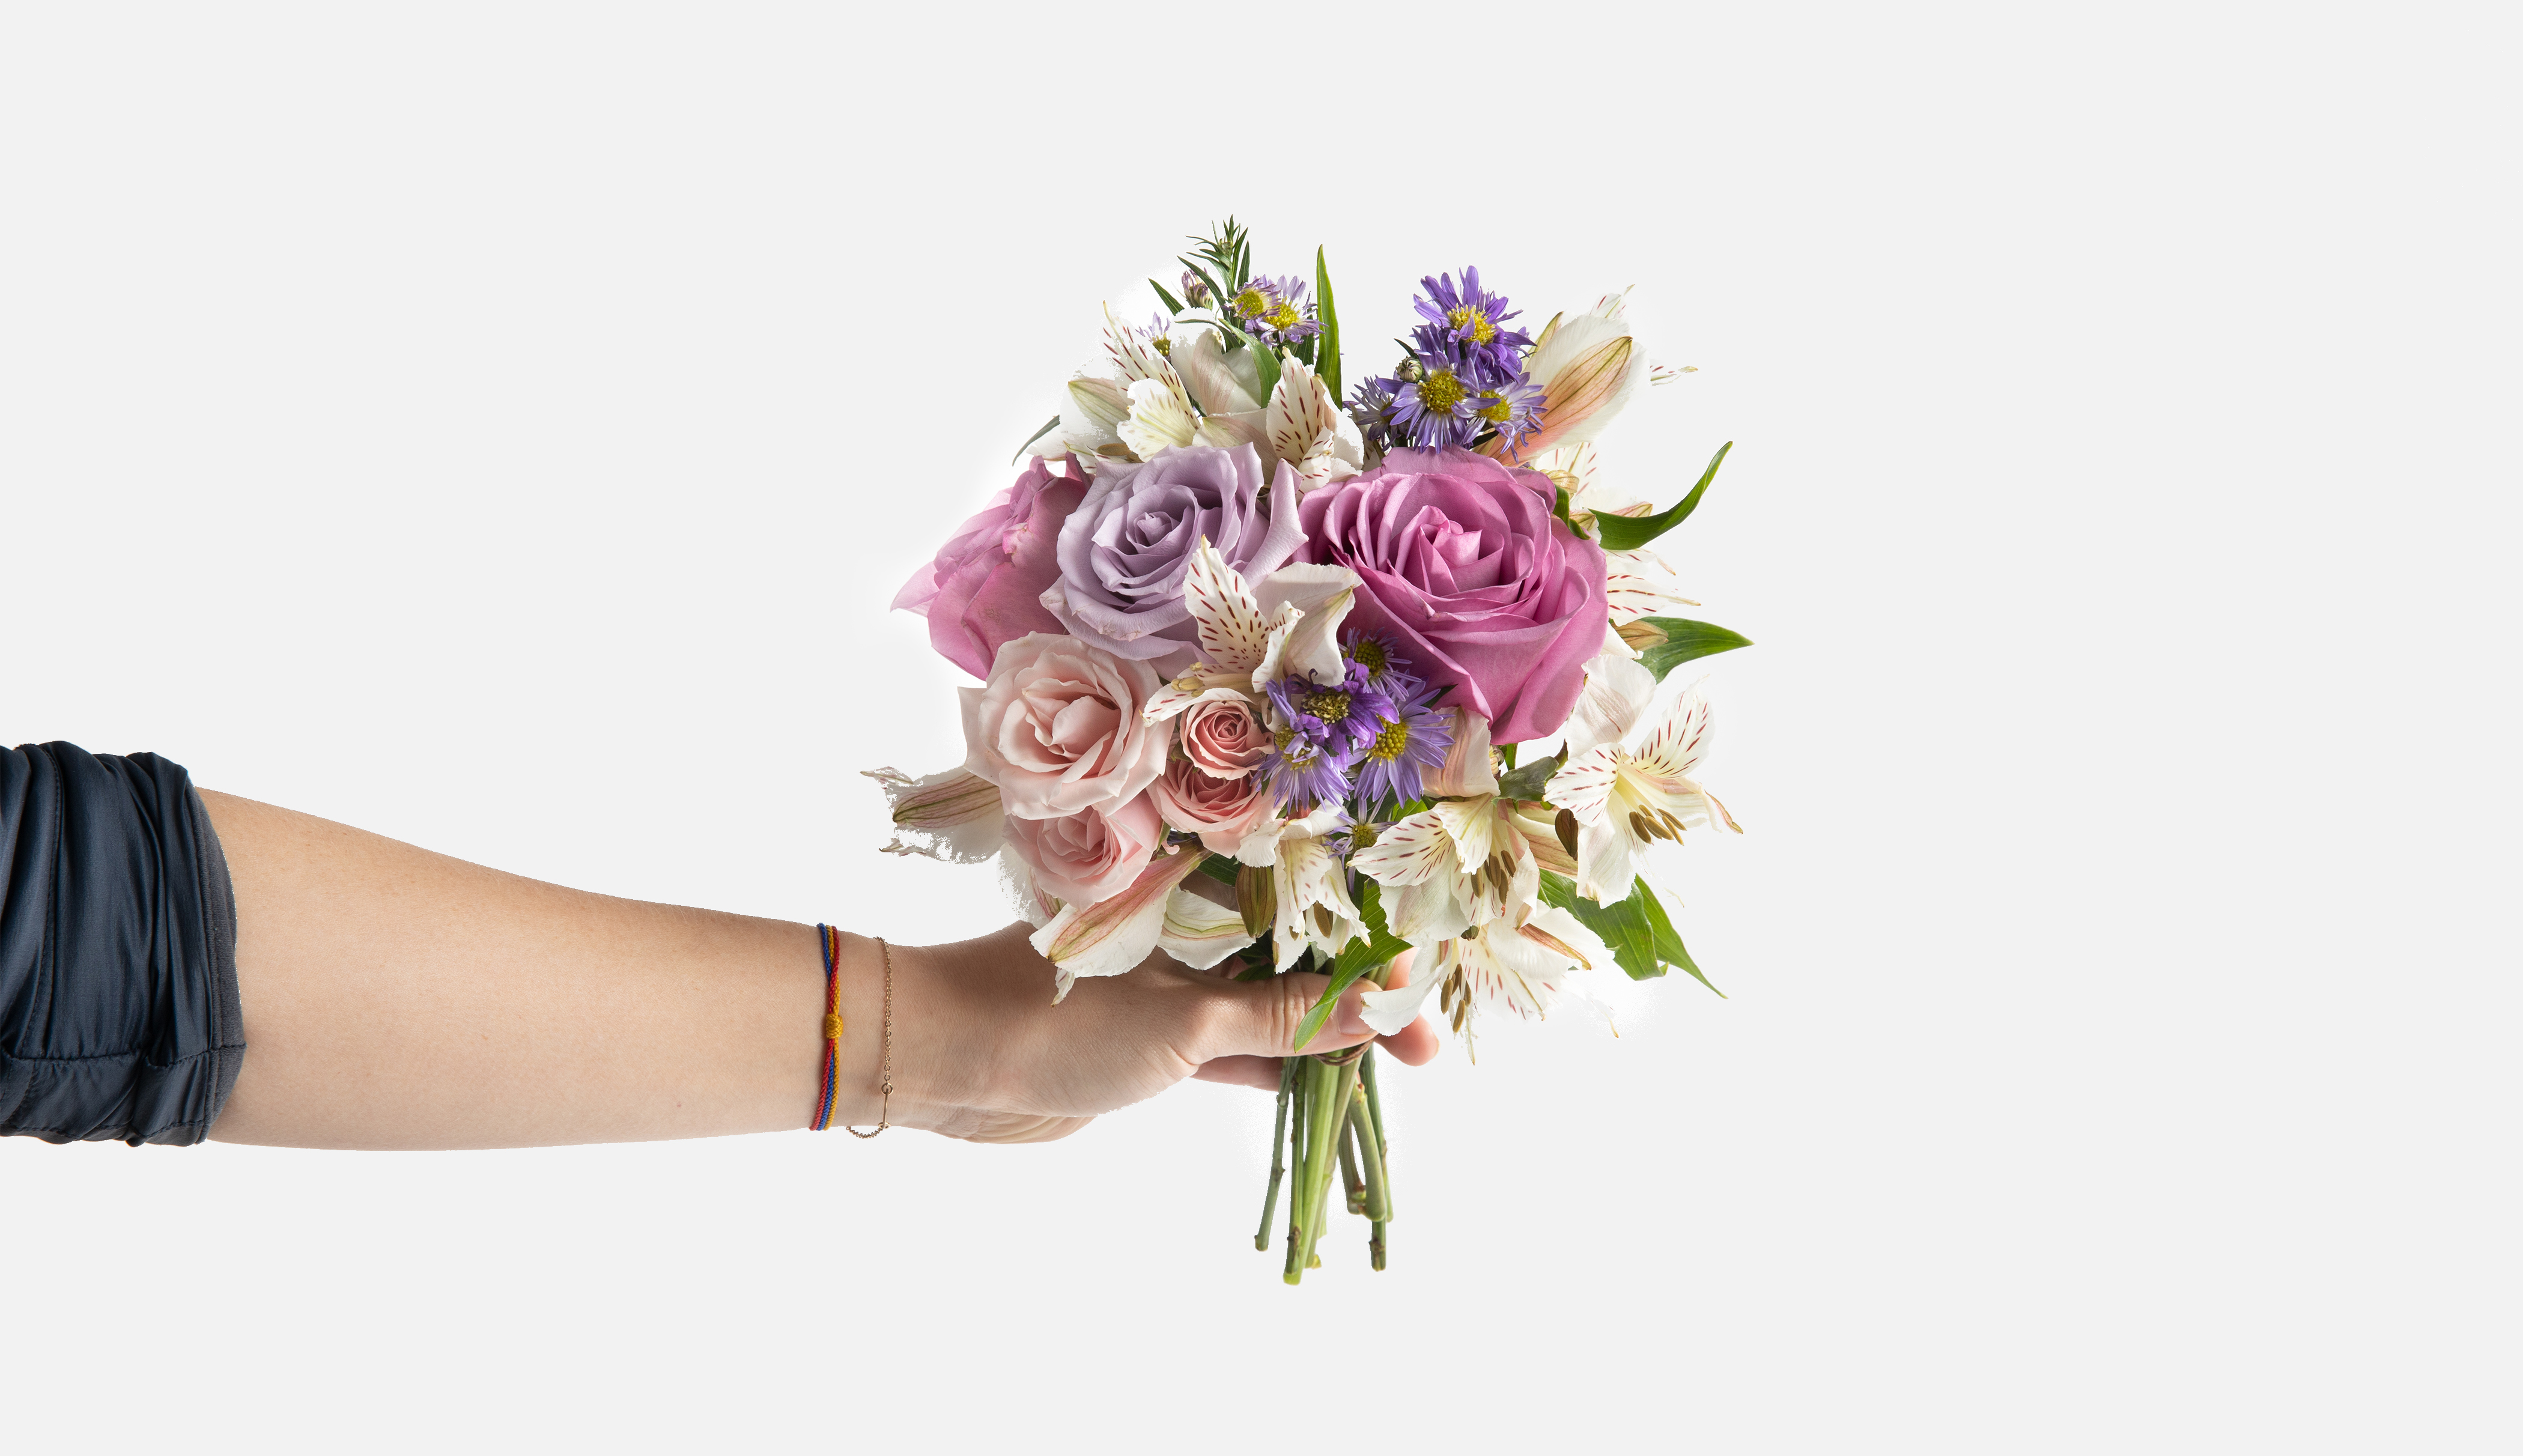 Hand holding mini bouquet of purple and white flowers